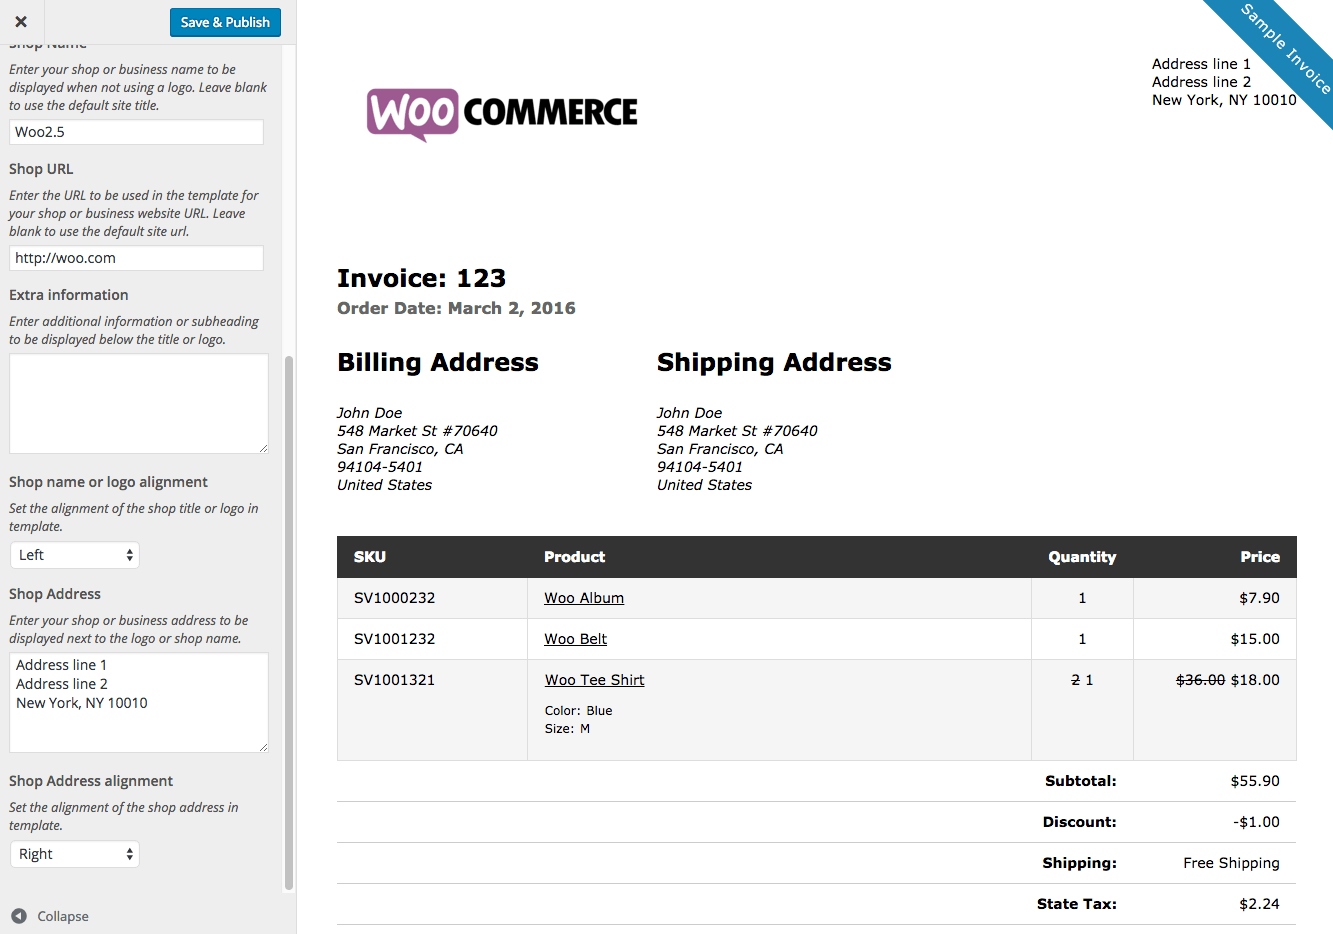 Soulfulpowerus  Nice Woocommerce Print Invoices Amp Packing Lists  Woocommerce Docs With Foxy Woocommerce Print Invoices  Packing Lists Customizer With Cool Invoice Template Self Employed Also Microsoft Invoice Template  In Addition Sme Invoice Finance And Invoice Proforma Sample As Well As Invoice Financing Uk Additionally Dental Invoice Sample From Docswoocommercecom With Soulfulpowerus  Foxy Woocommerce Print Invoices Amp Packing Lists  Woocommerce Docs With Cool Woocommerce Print Invoices  Packing Lists Customizer And Nice Invoice Template Self Employed Also Microsoft Invoice Template  In Addition Sme Invoice Finance From Docswoocommercecom